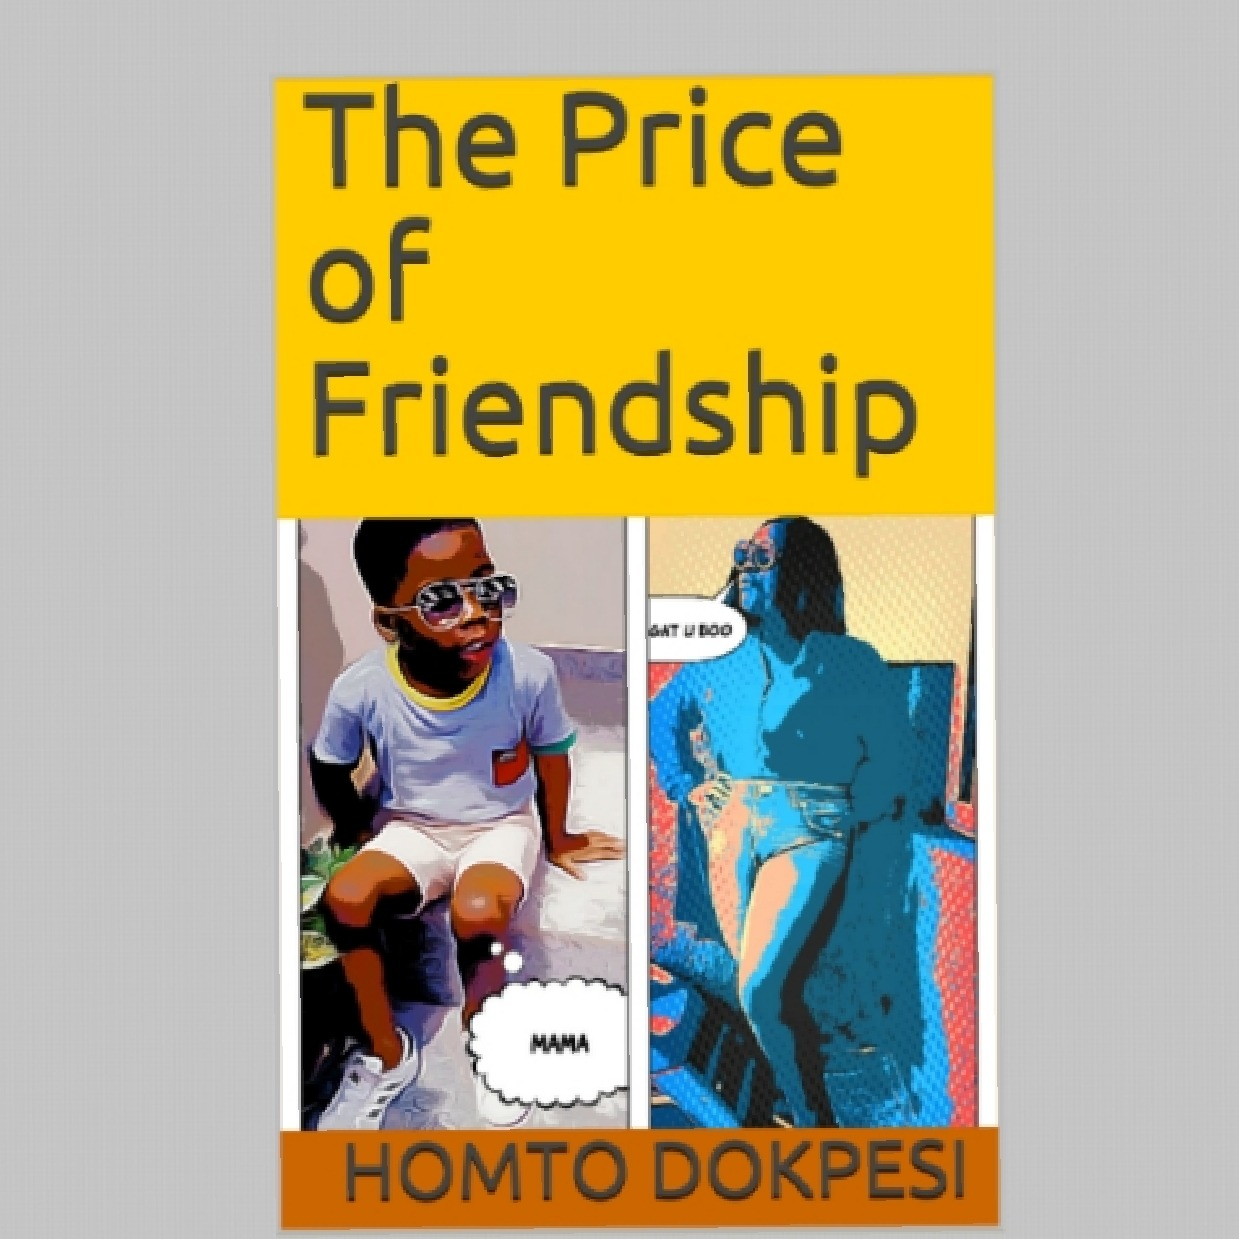 The Price of Friendship